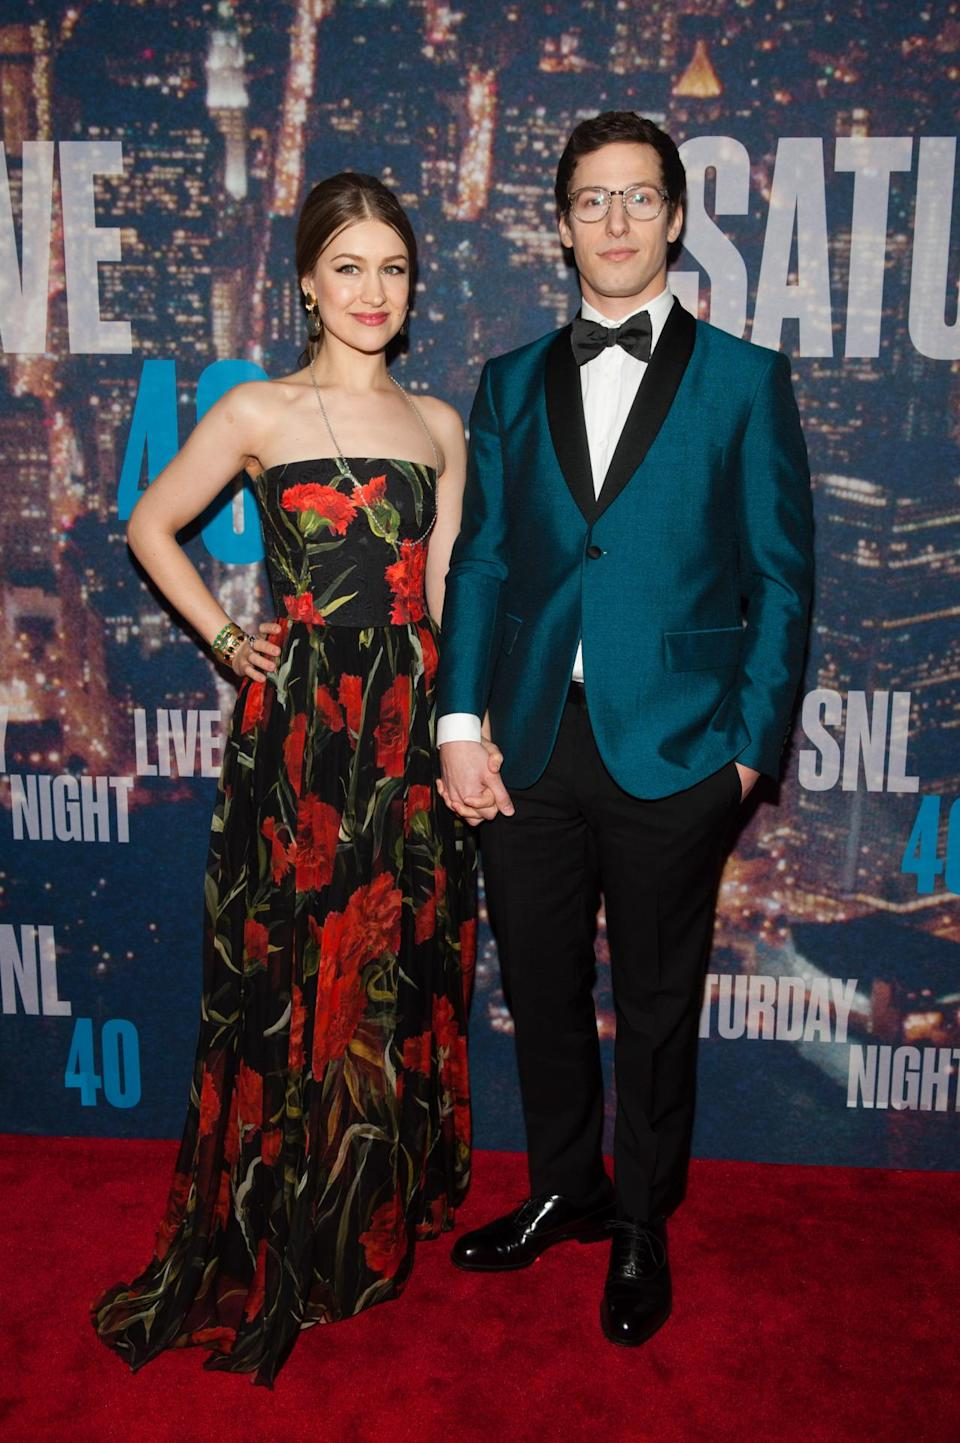 Andy Samberg, in a teal (the color of the night!) blazer, and his wife, Joanna Newsom, in a winter floral gown, take the top prize for best dressed couple on Sunday night. Even their color palates are perfectly coordinated!